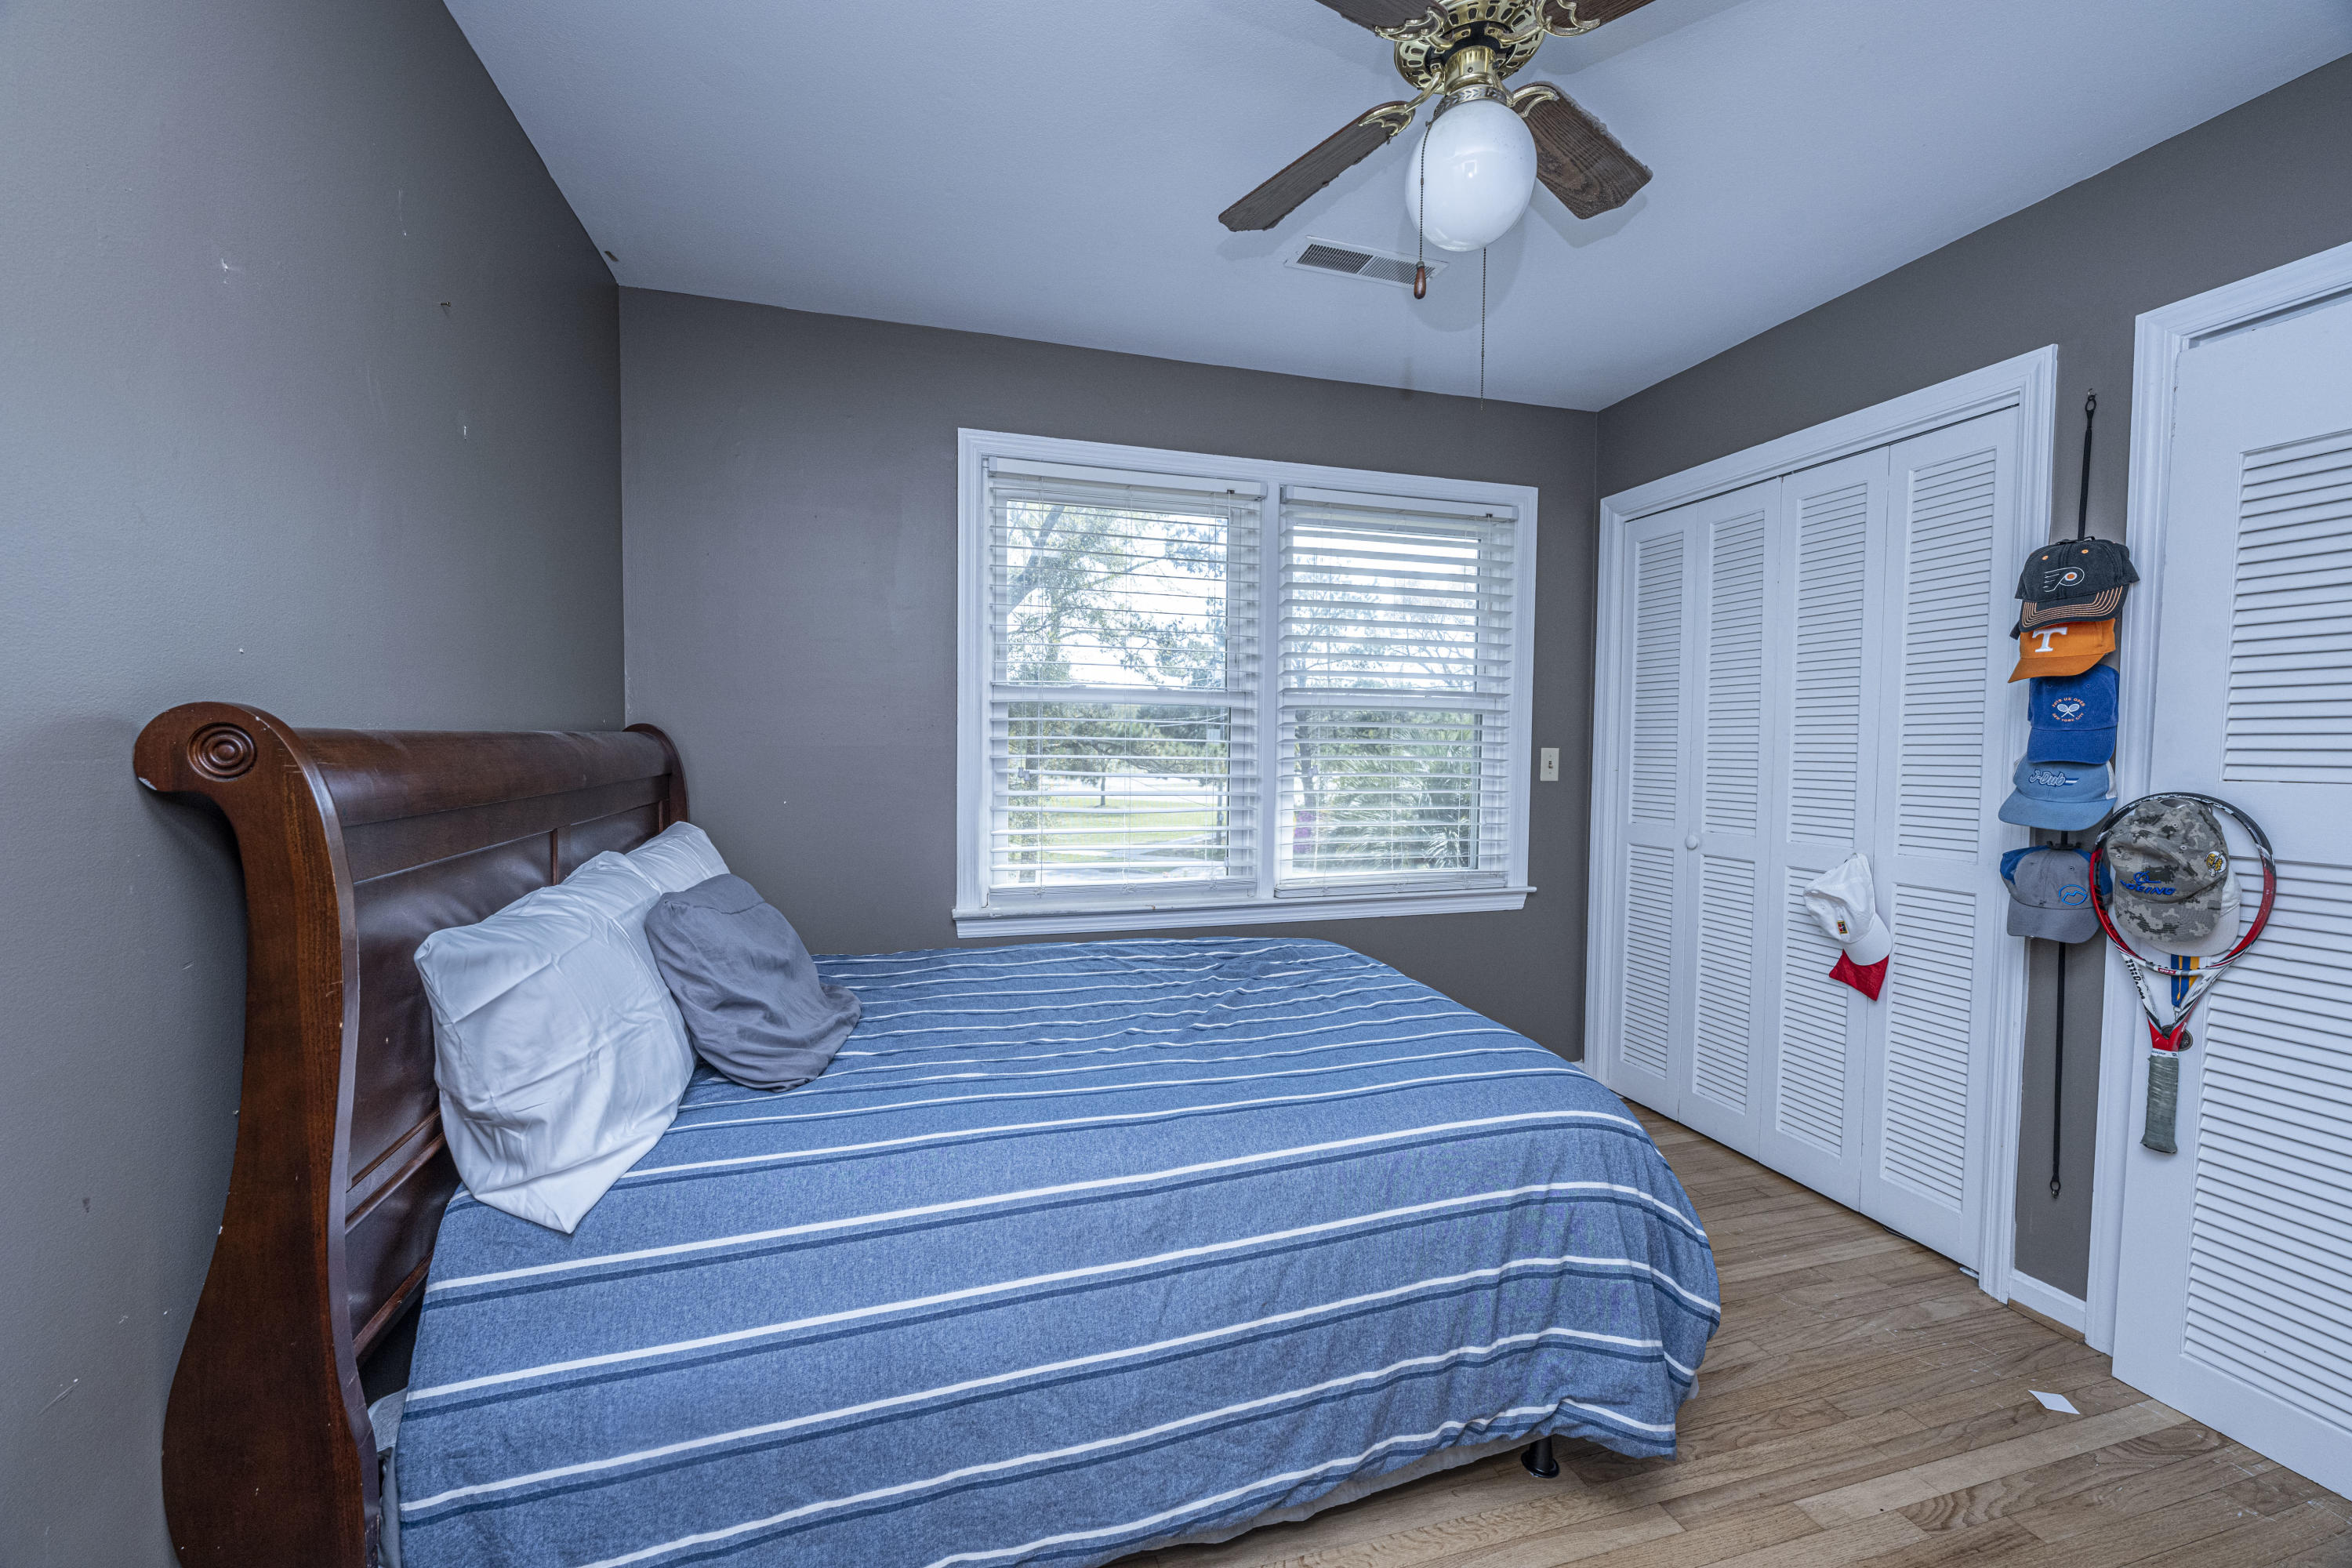 Stiles Point Homes For Sale - 775 Sparrow, Charleston, SC - 5